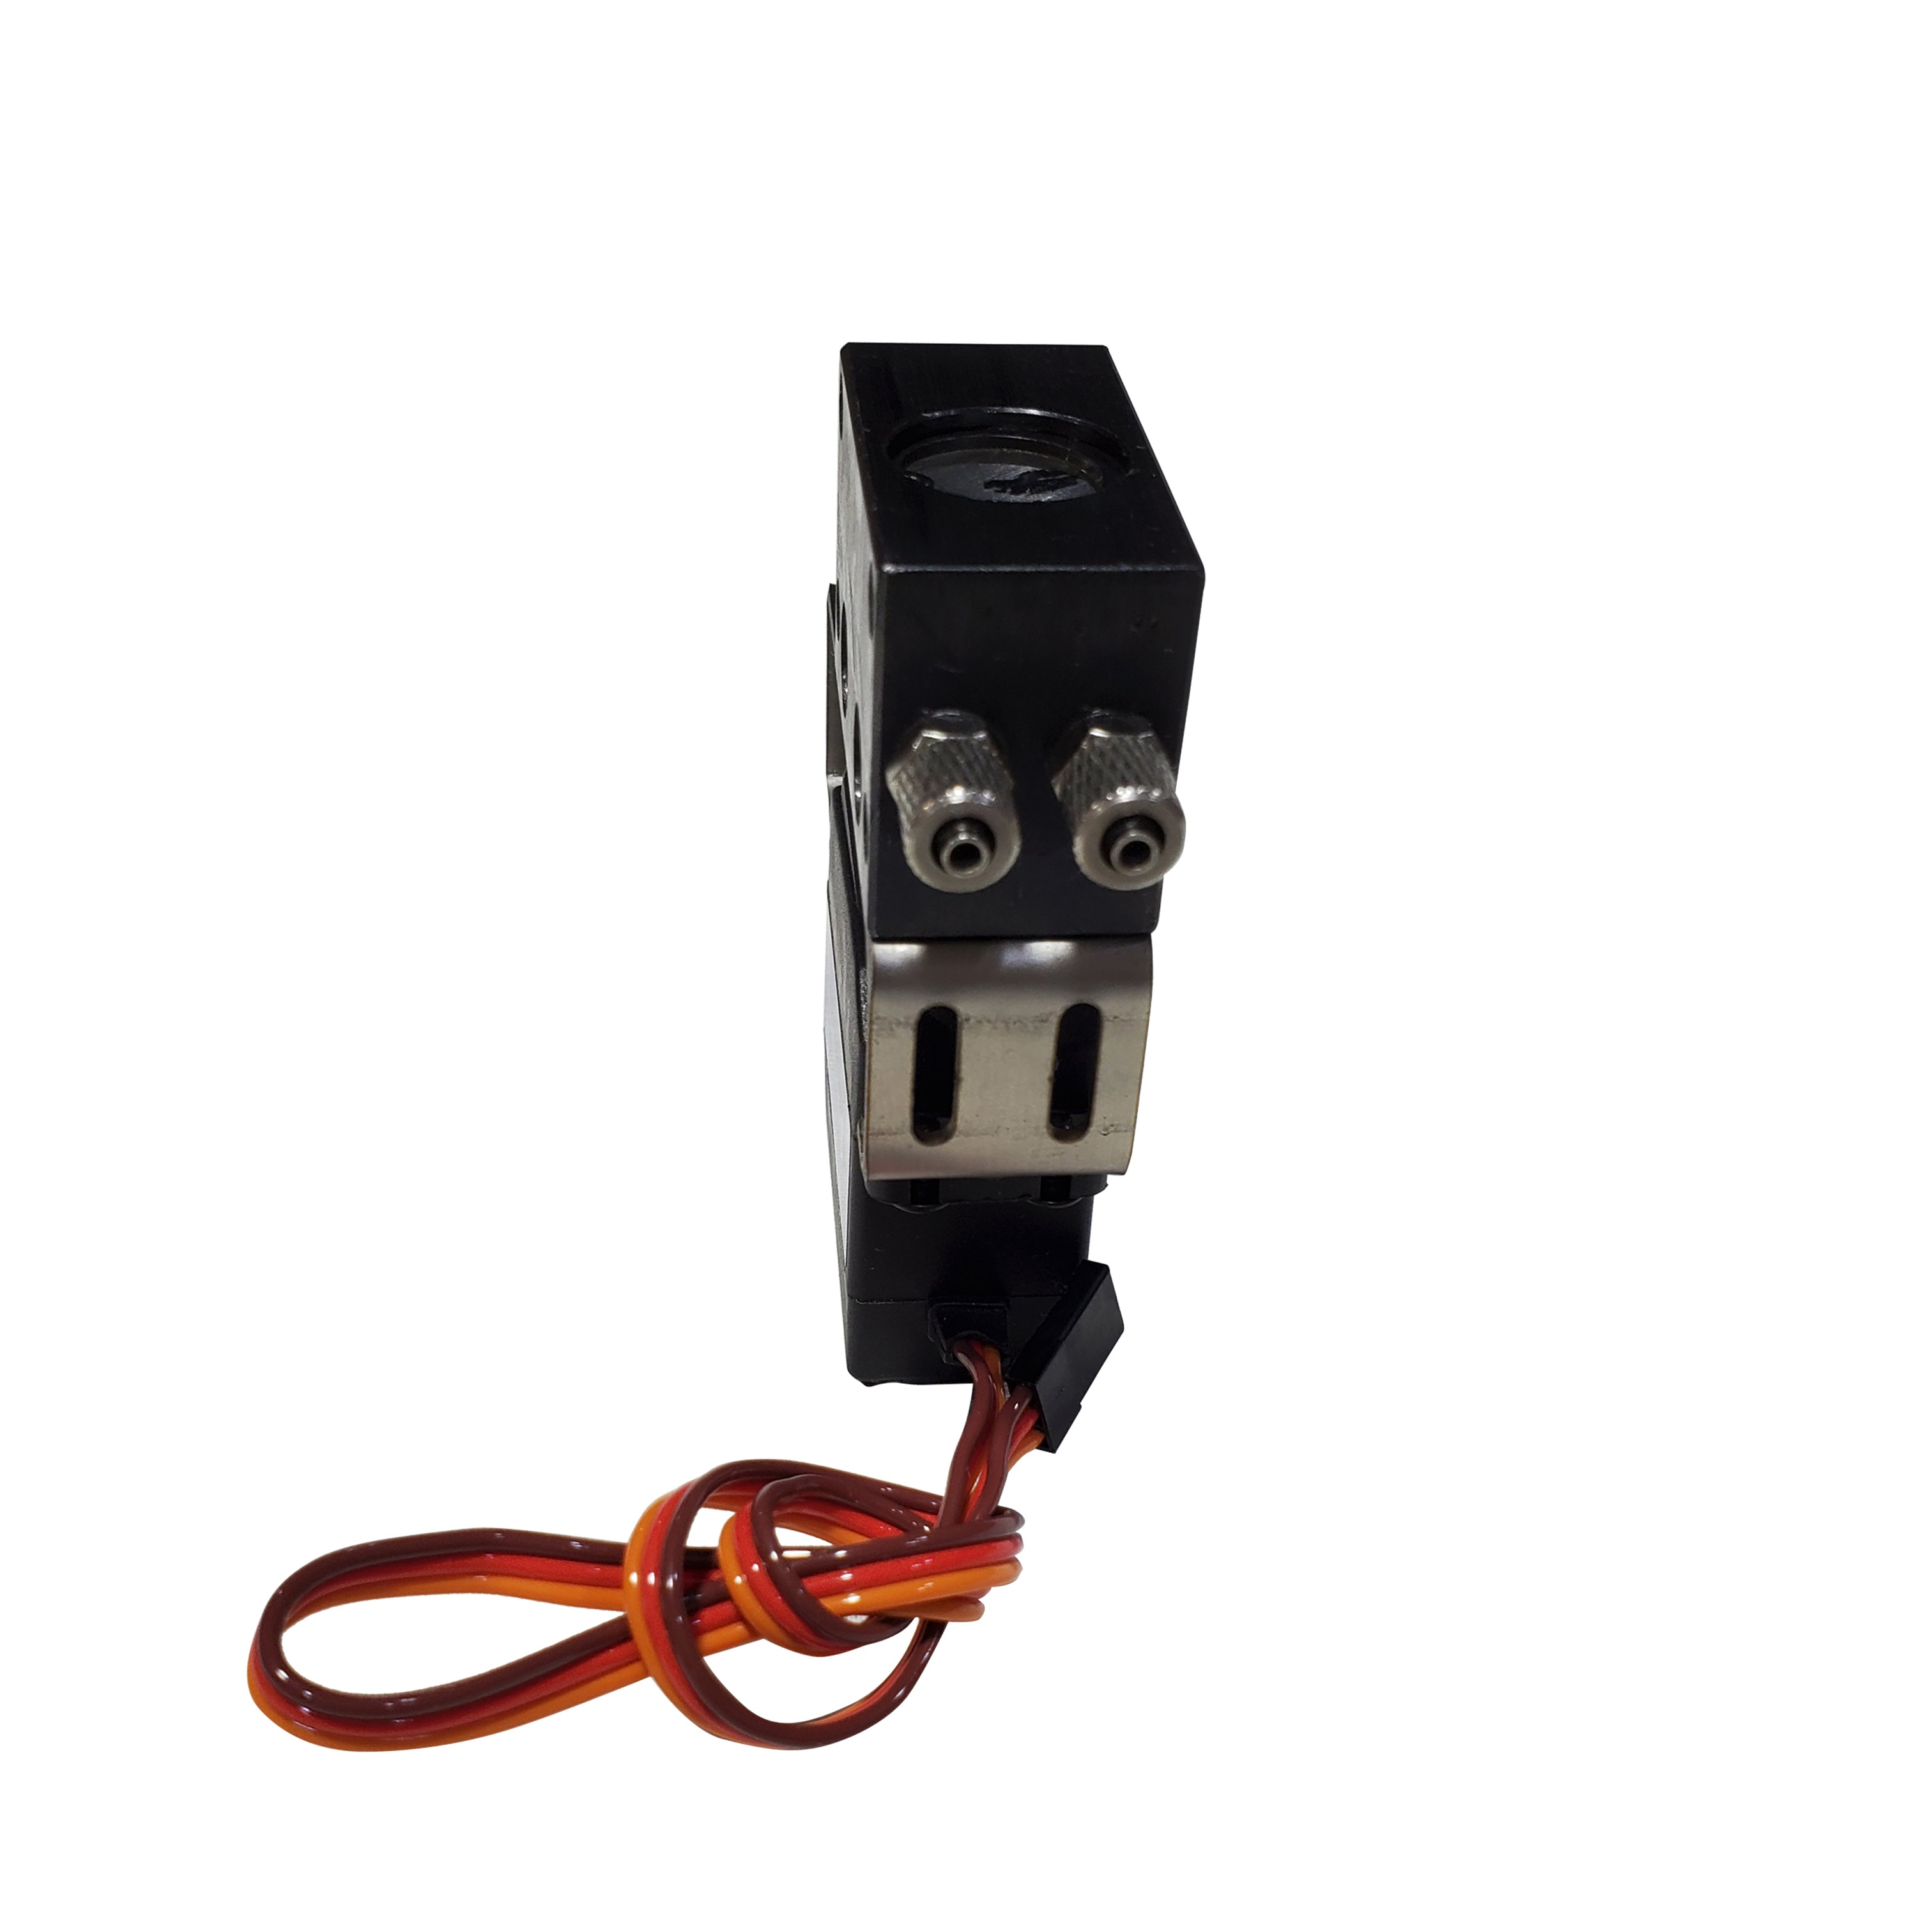 WA 470 Dedicated One-way Valve Including Servo Motor Can Be Customized and Assembled 1-10 Way Valve enlarge